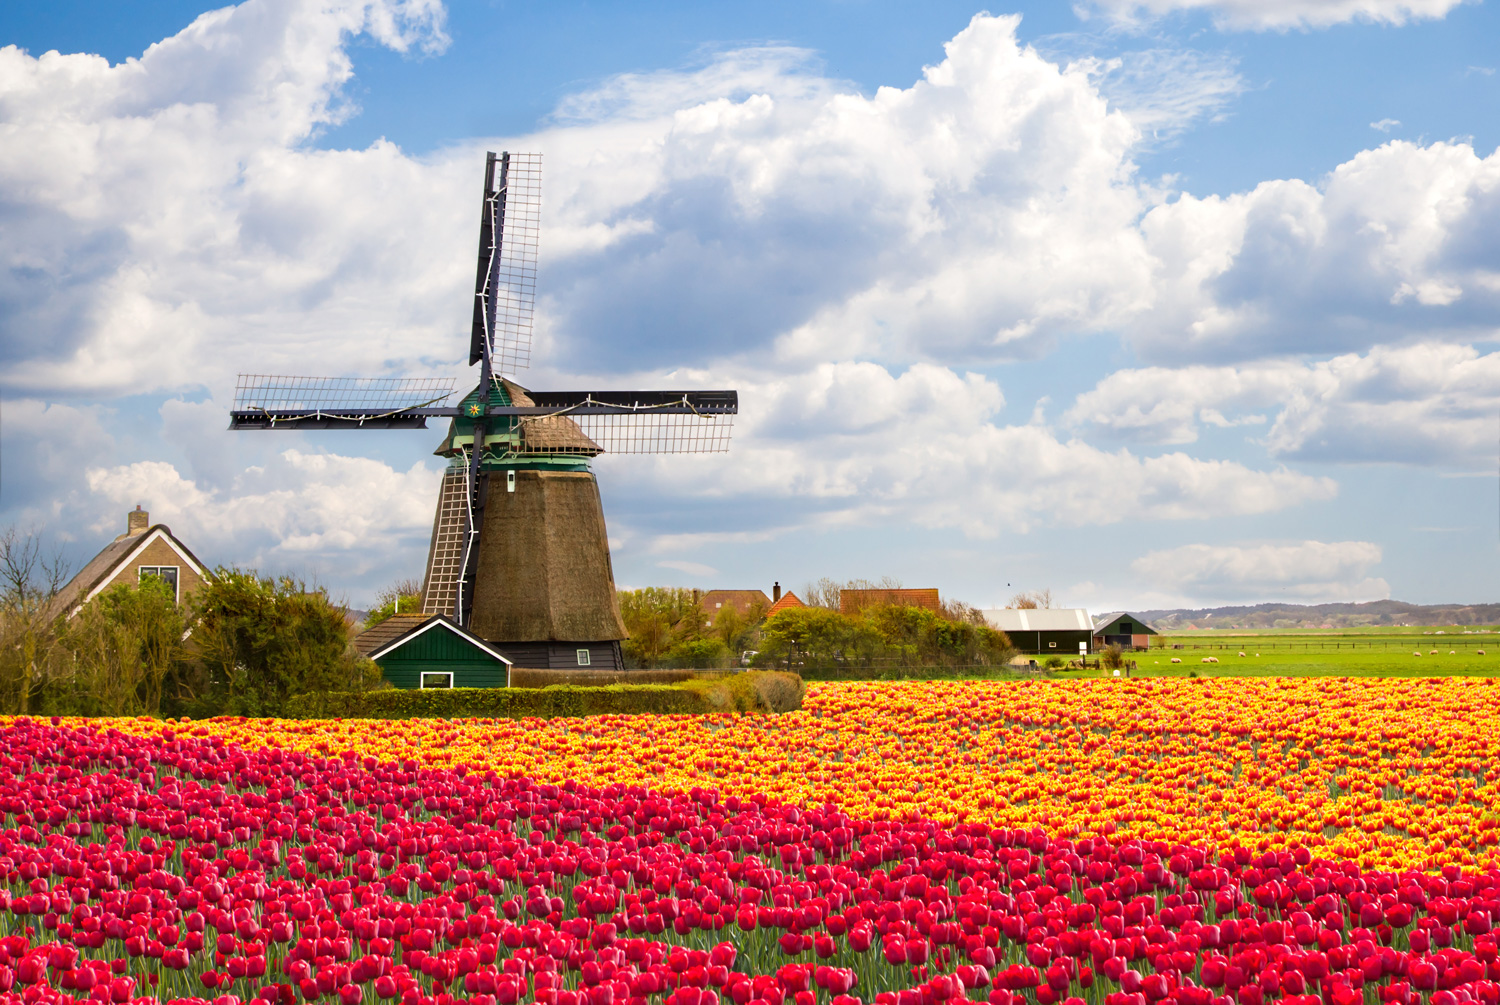 Windmill surrounded by tulip fields, Netherlands